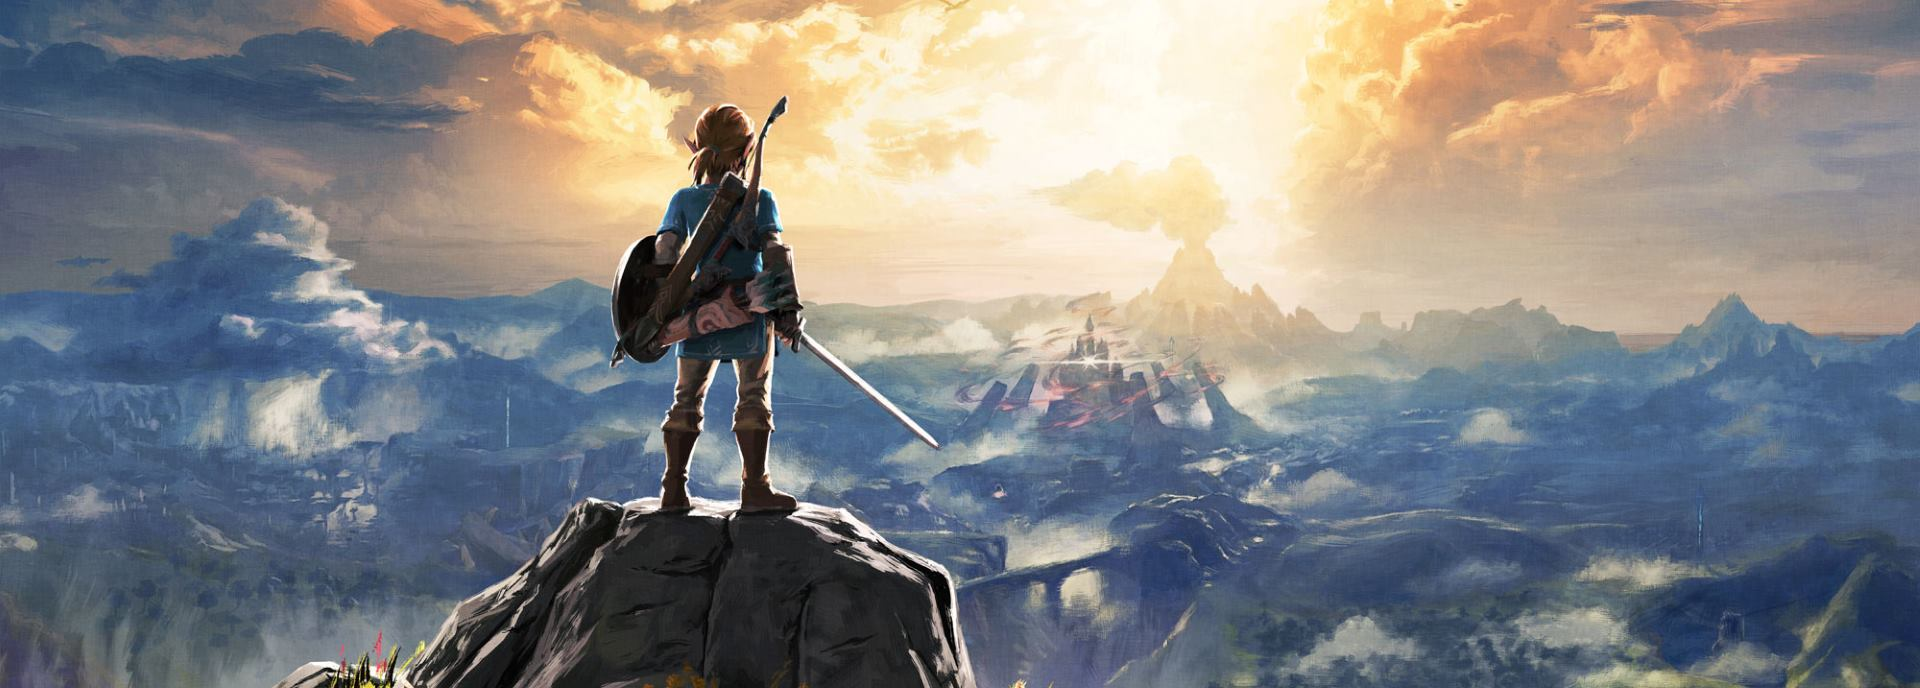 VIDEO: 'Legend of Zelda: Breath of the Wild' zadnja je kompjuterska igra napravljena za Nintendo Wii U